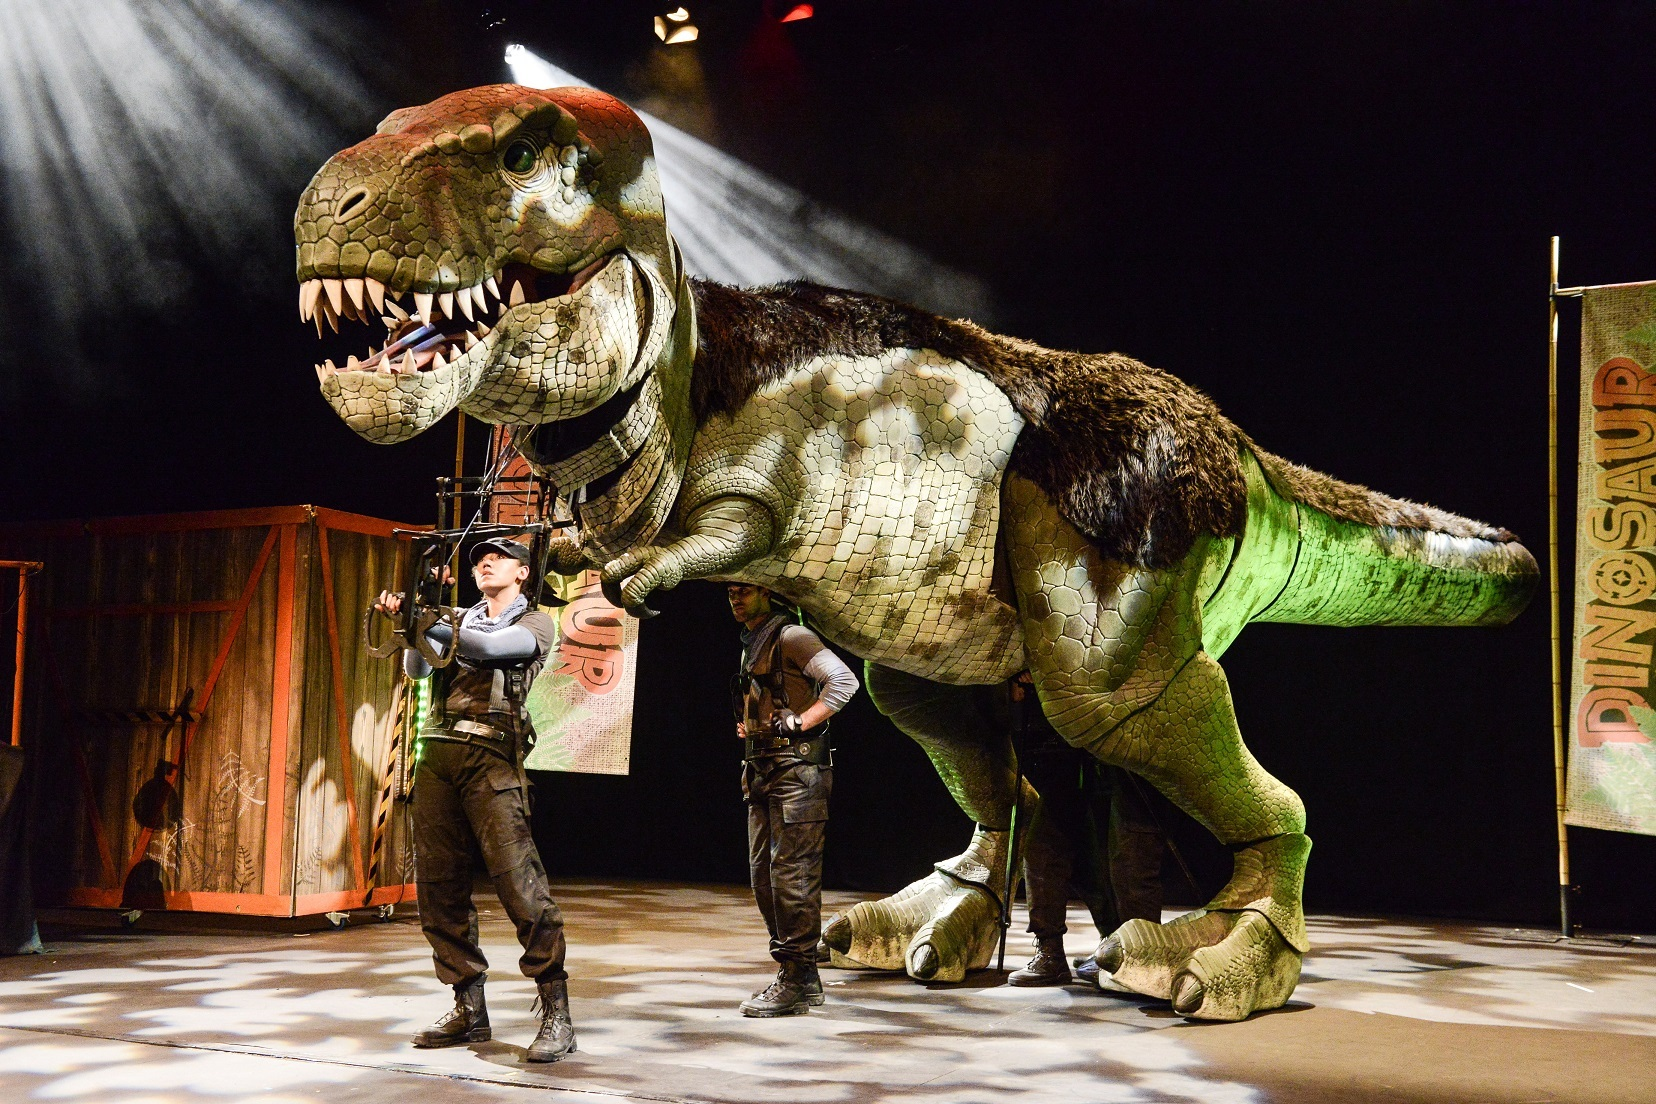 DINOFUN: Even T-Rex is in on the act. Pic by Robert Day